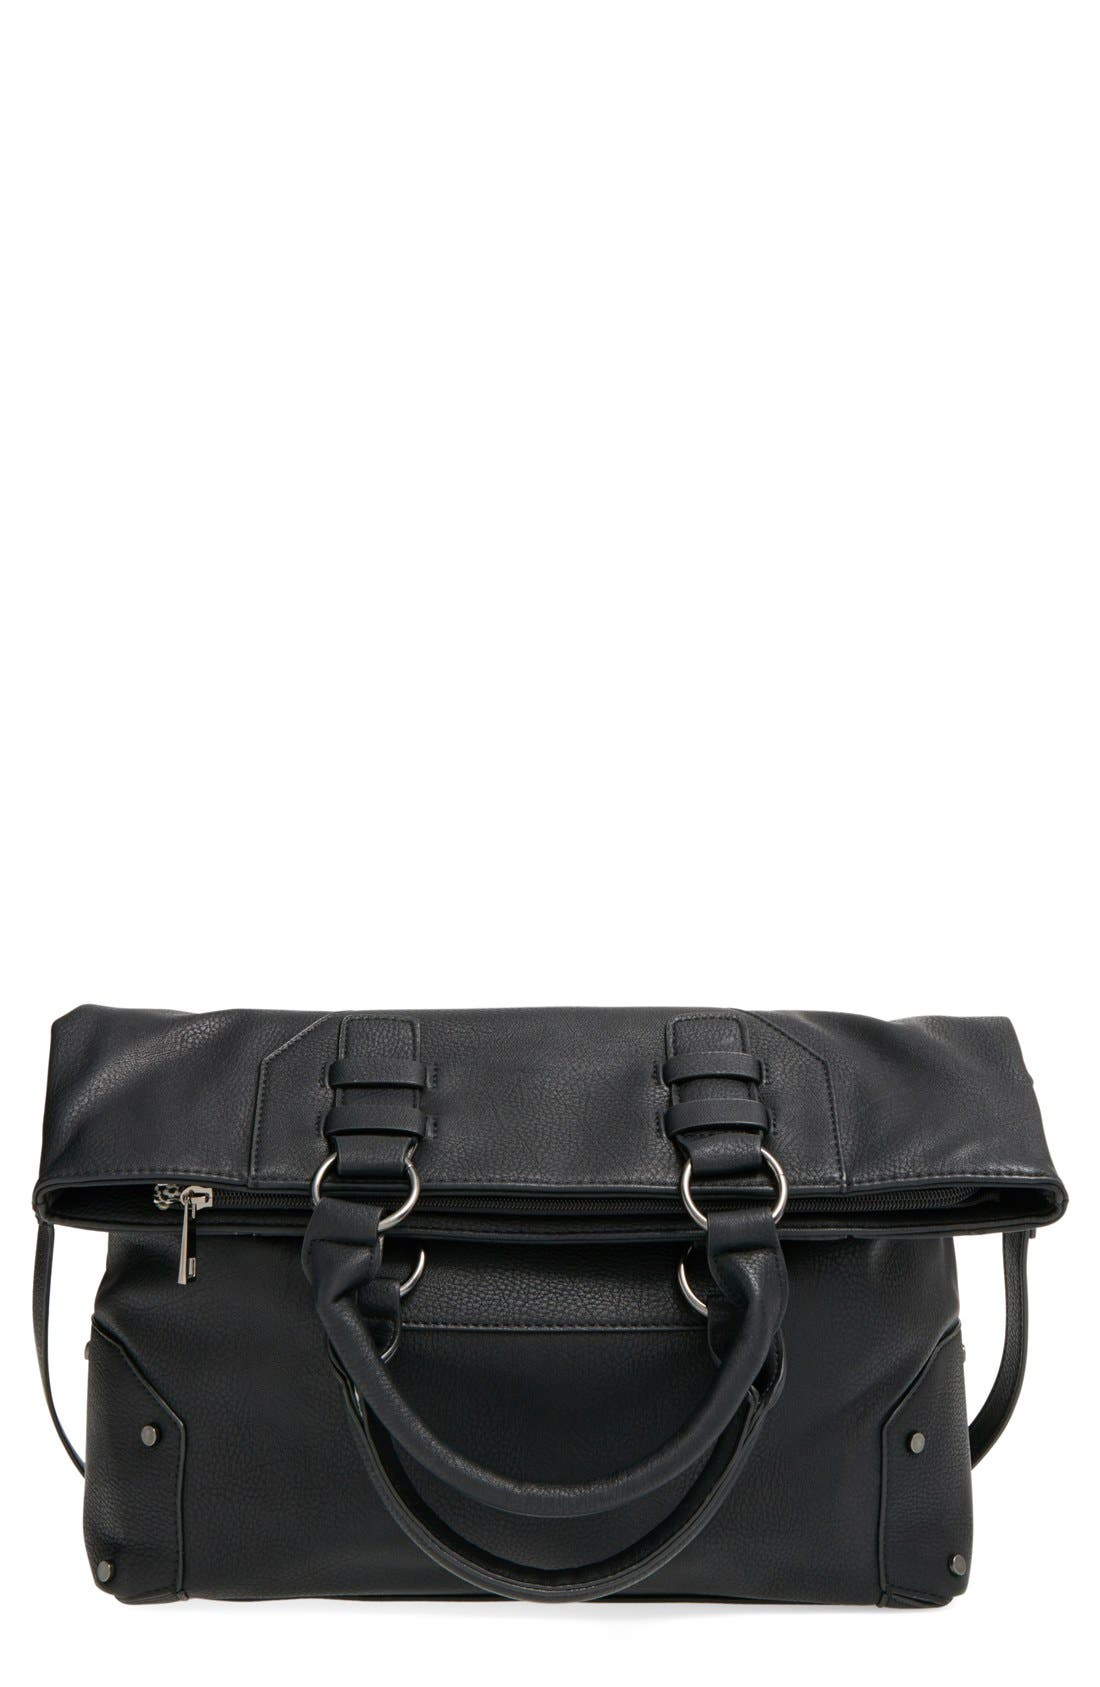 Main Image - Sole Society 'Monze' Faux Leather Foldover Tote